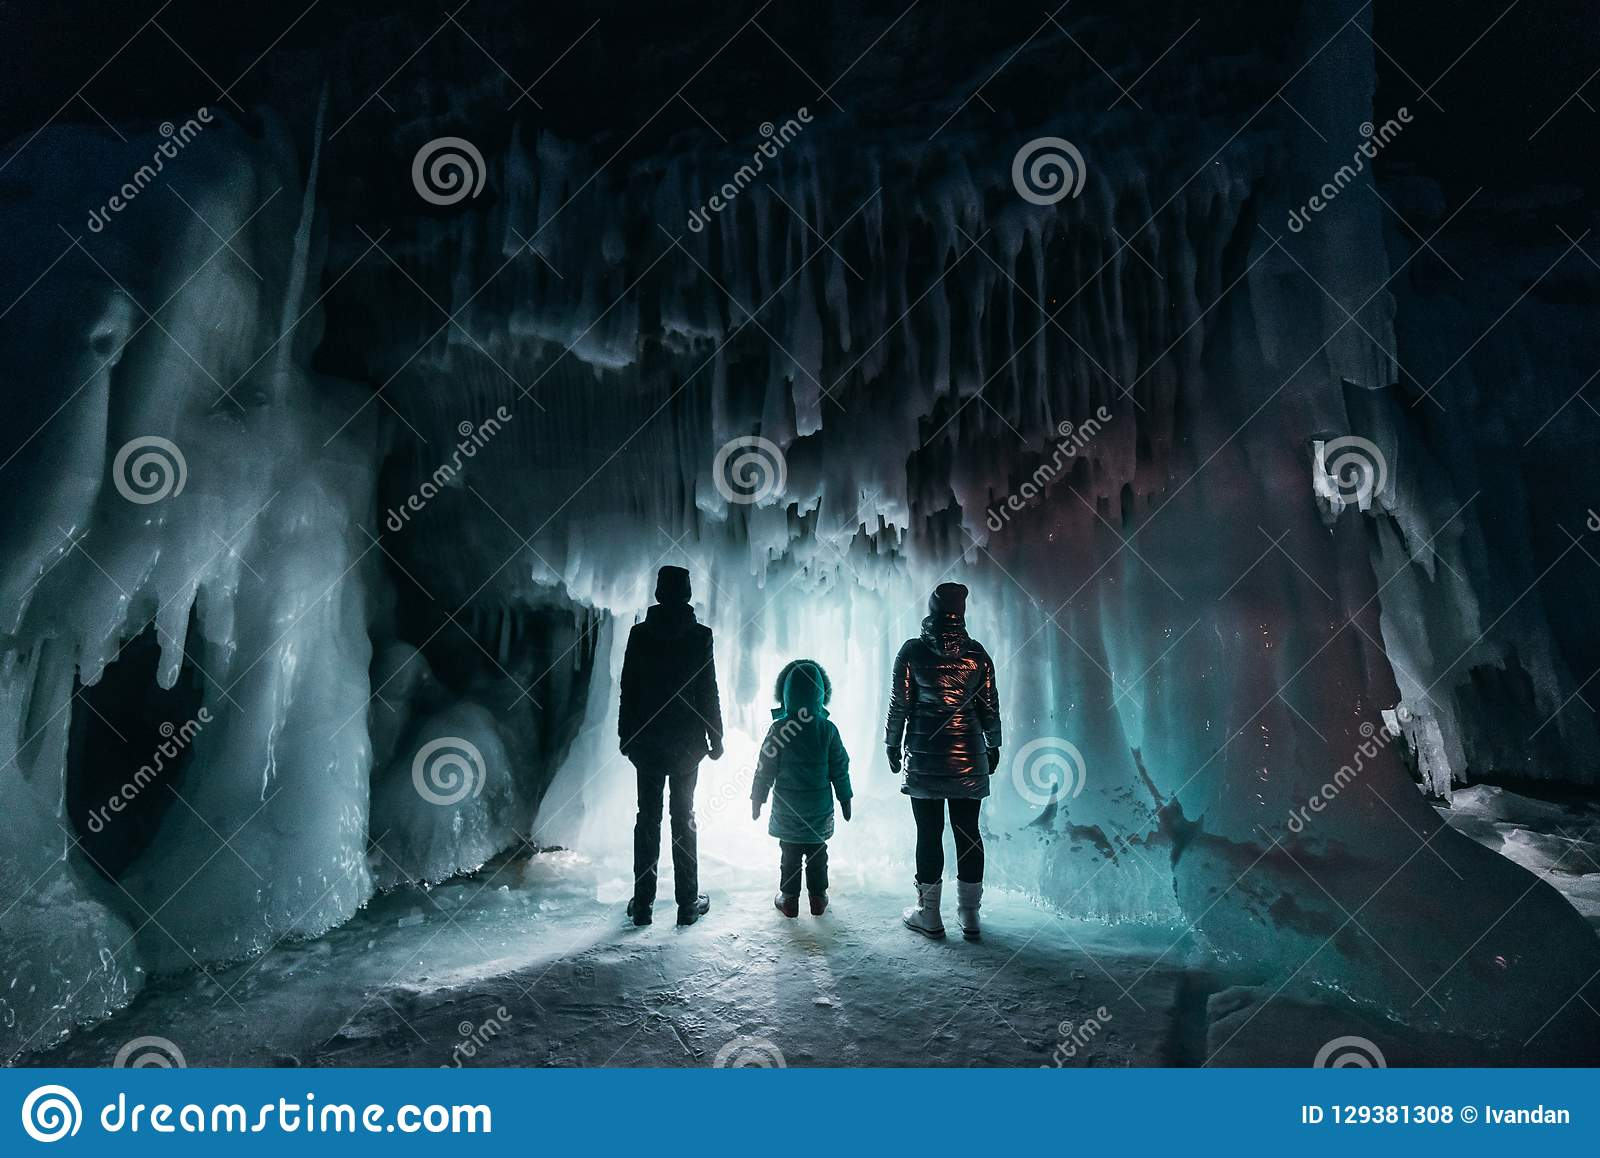 Surreal landscape with people exploring mysterious ice grotto cave. Outdoor adventure. Family exploring huge icy cave